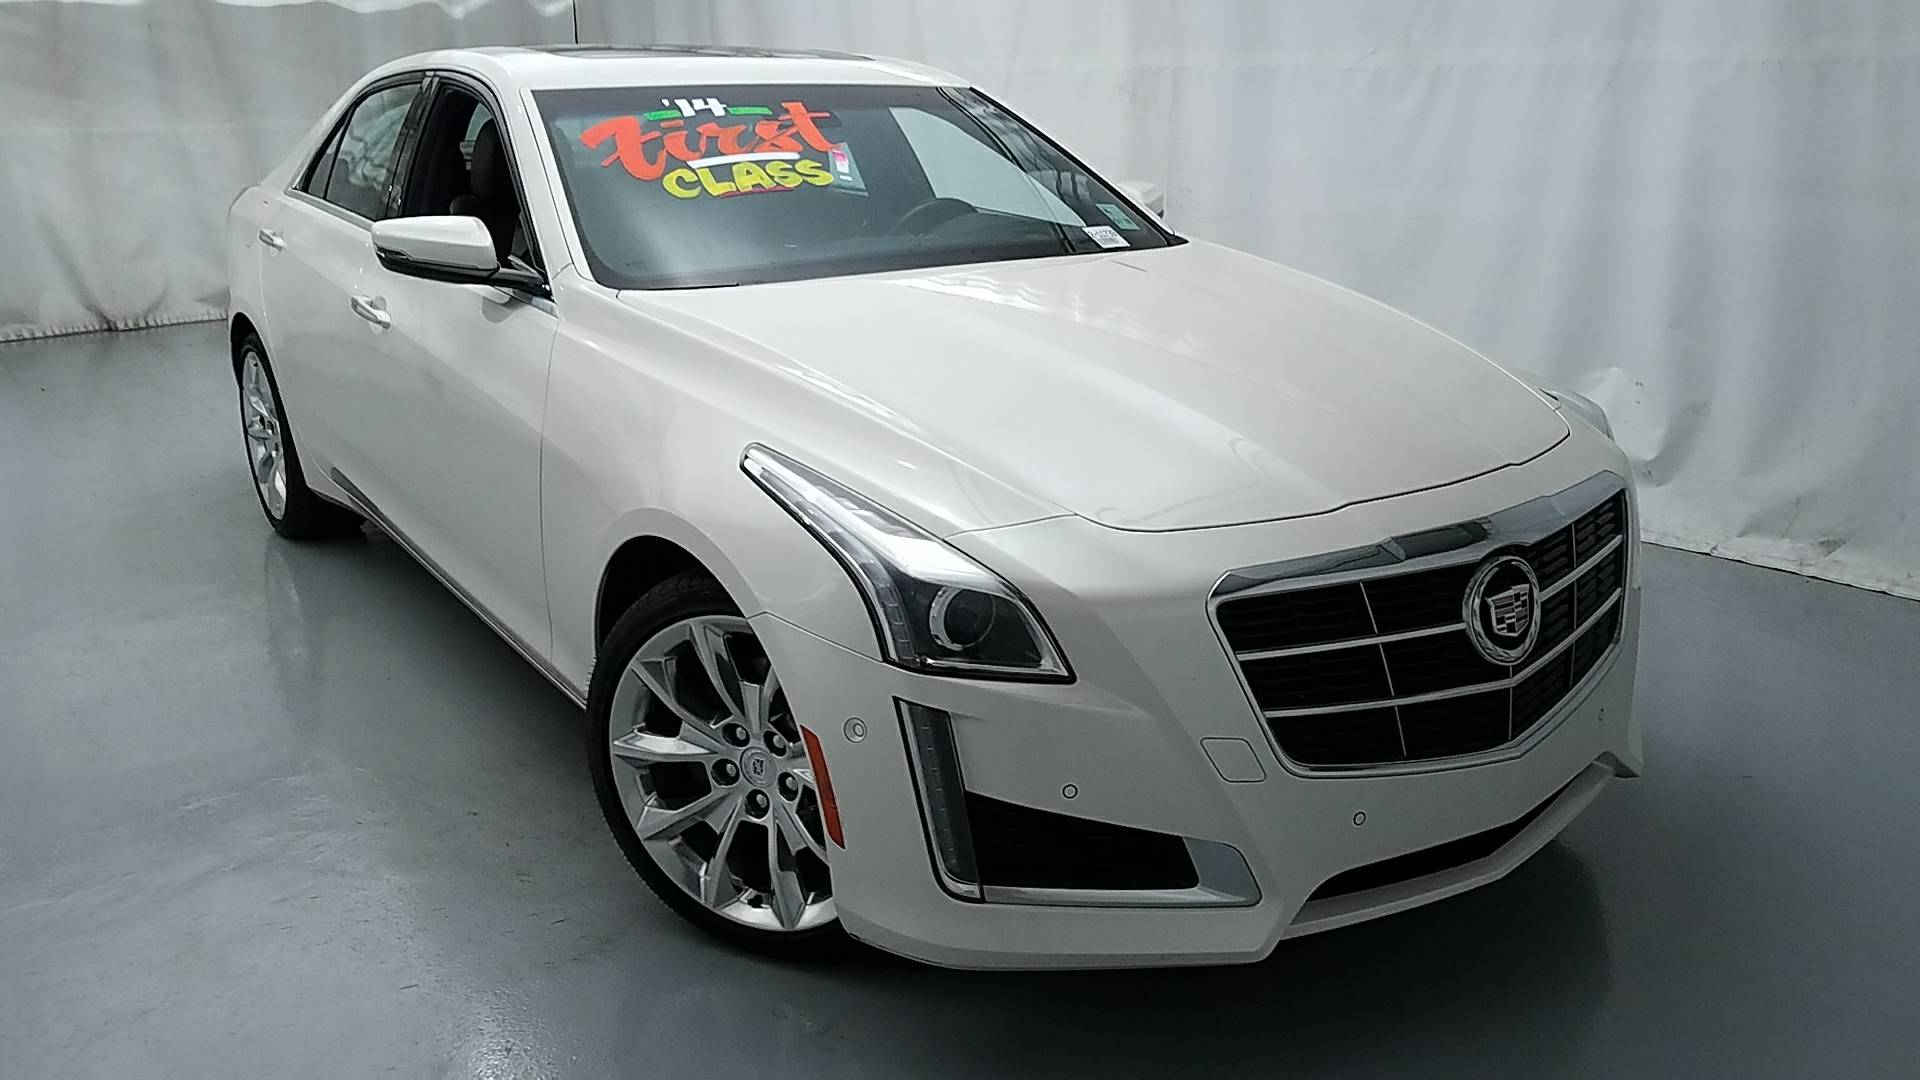 cadillac pre cts owned used sale for pic